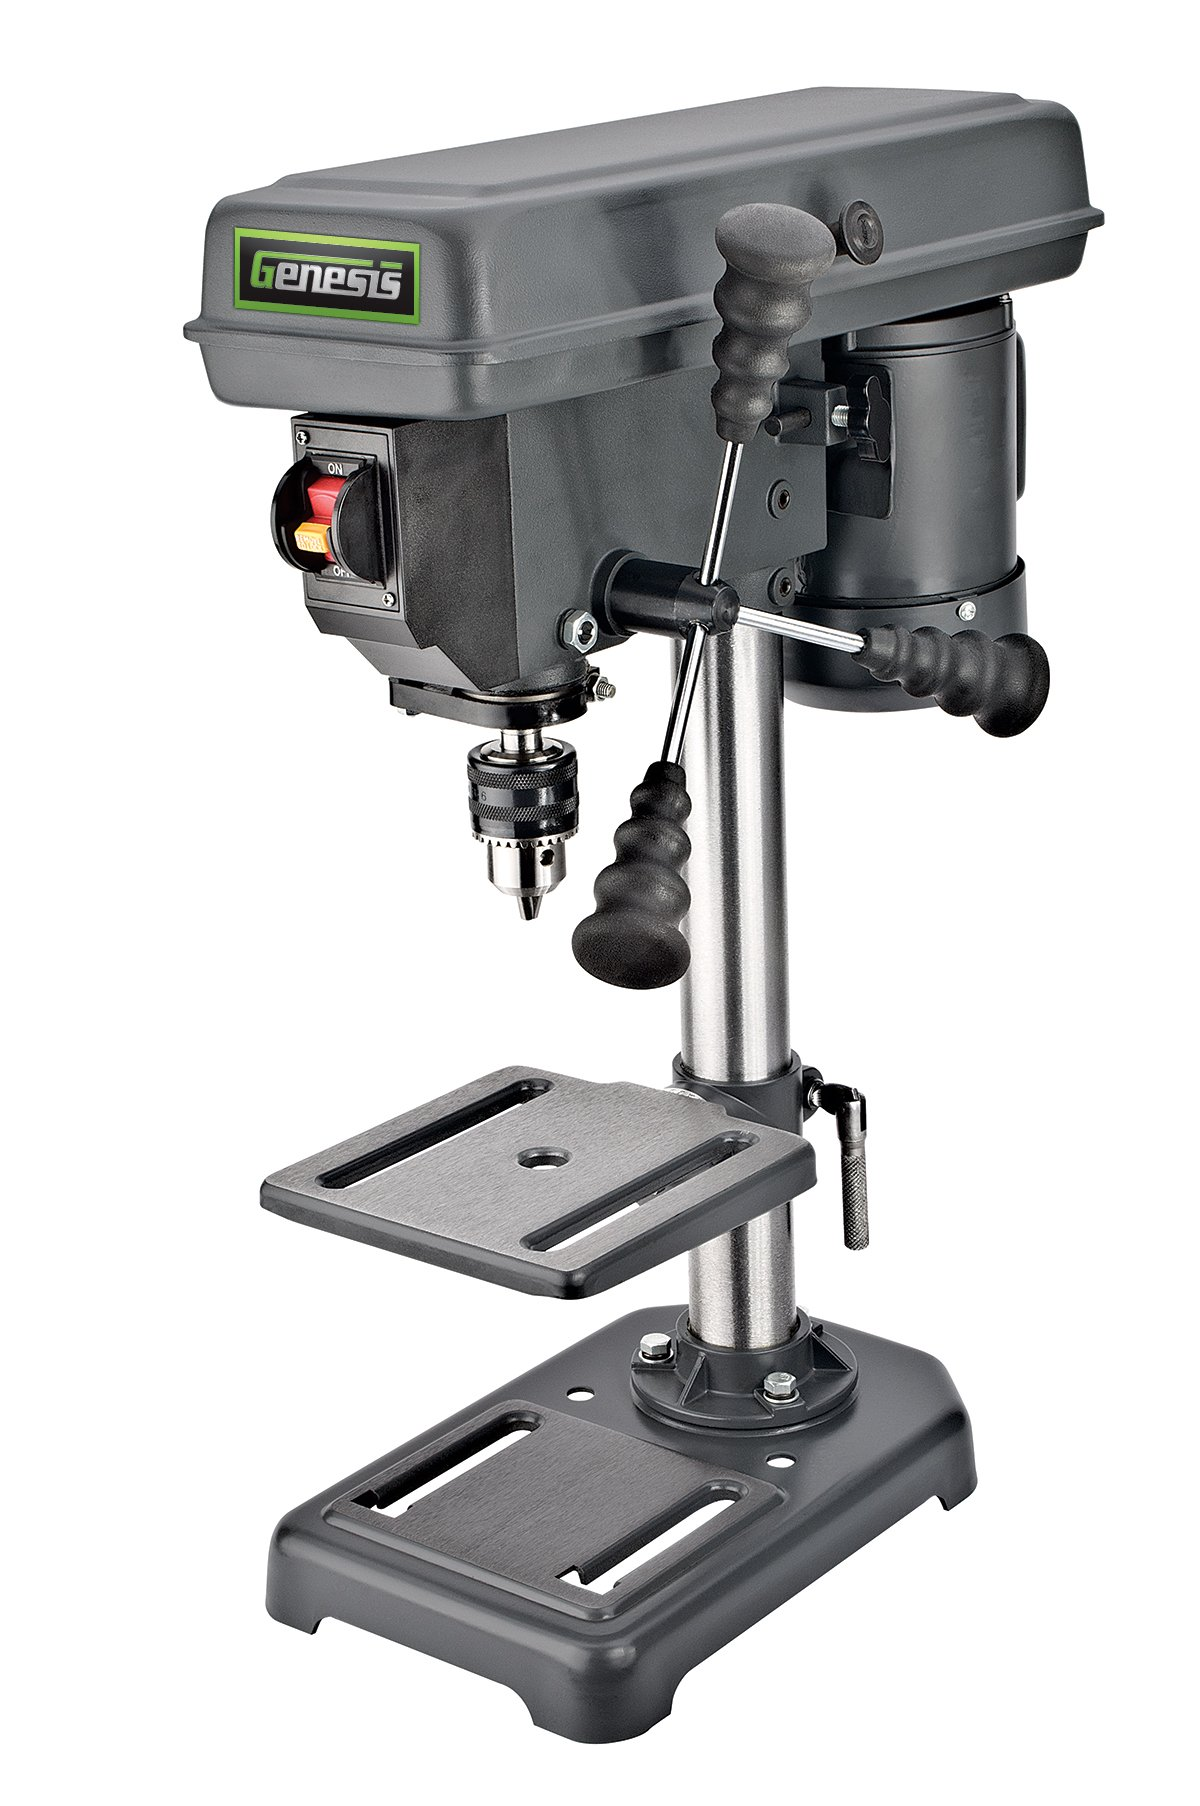 Genesis GDP805P 8 In. 5-Speed 2.6 Amp Drill Press with 1/2 In. Chuck & Tilt Table, by Genesis